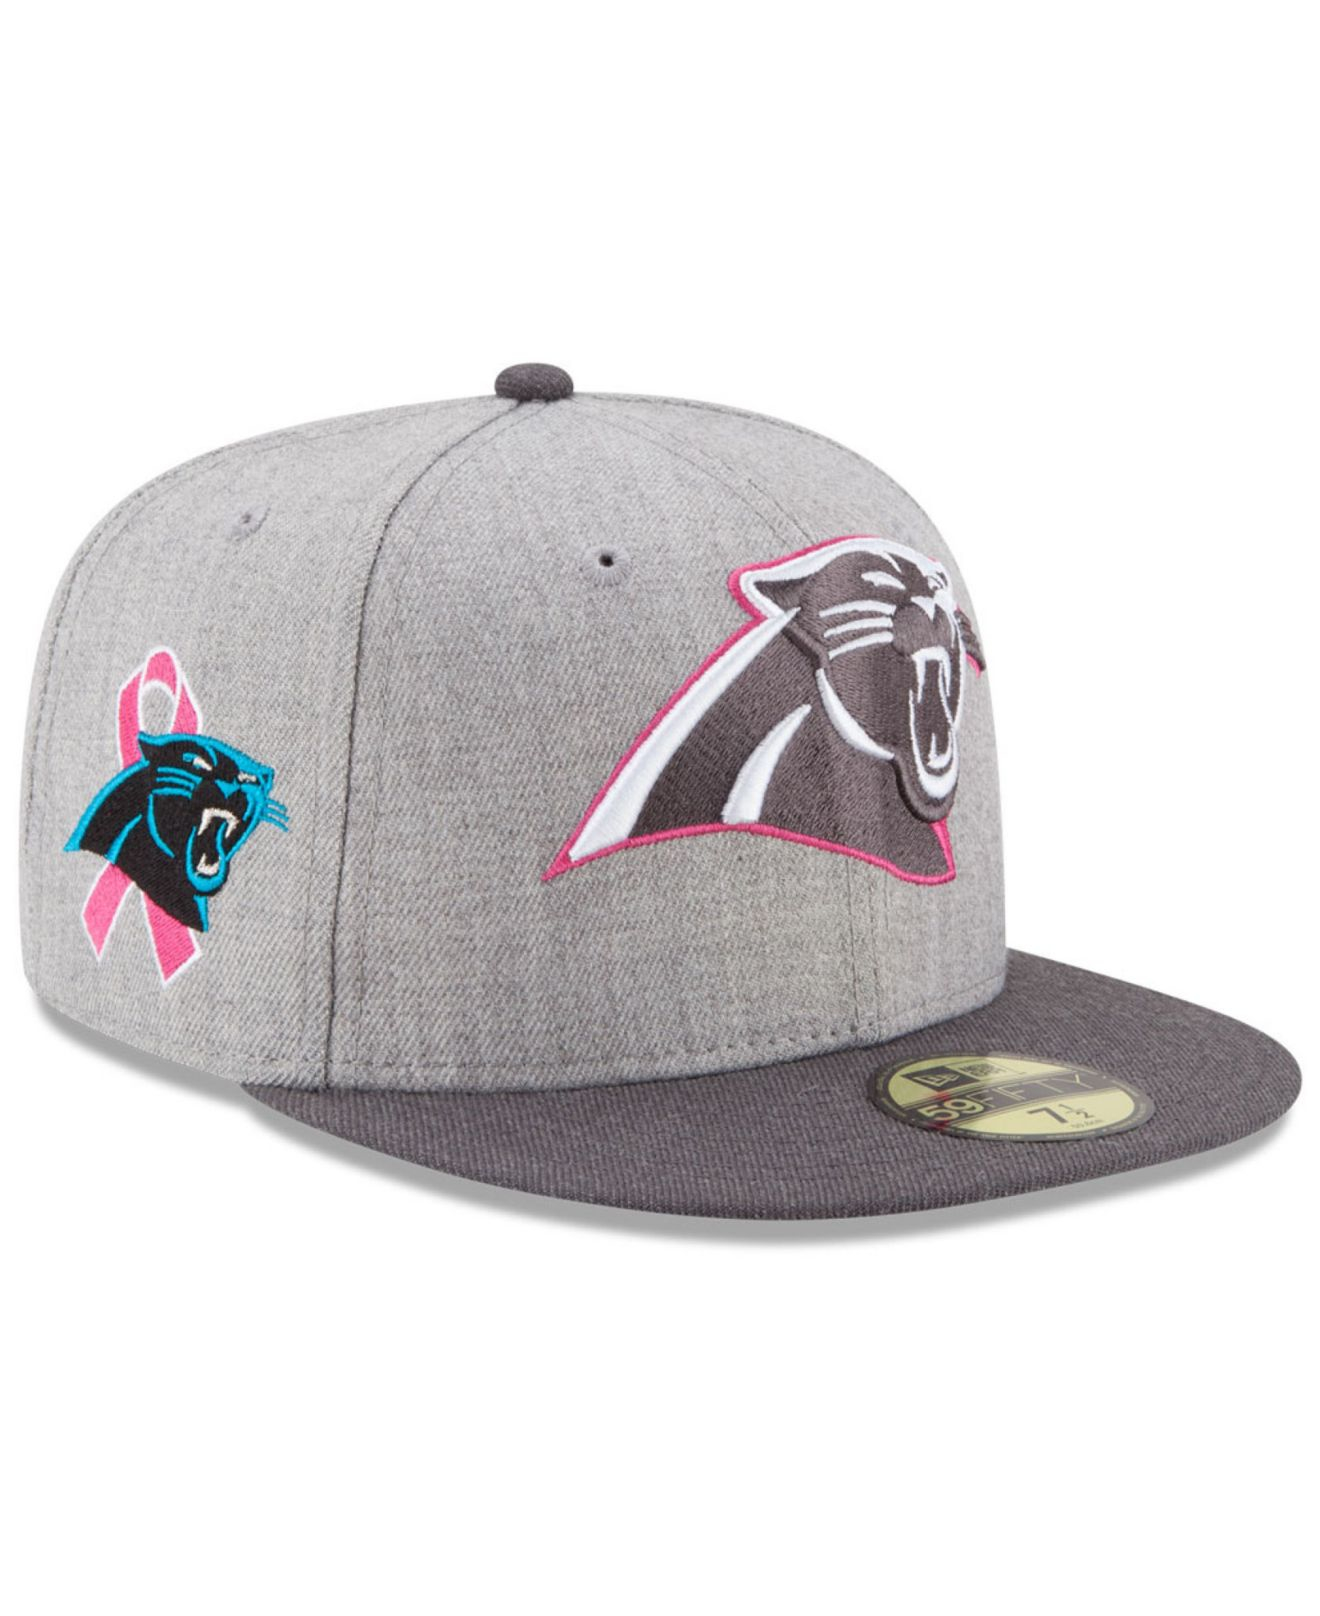 5dcb93c4cfc Lyst - KTZ Carolina Panthers Breast Cancer Awareness 59fifty Cap in ...